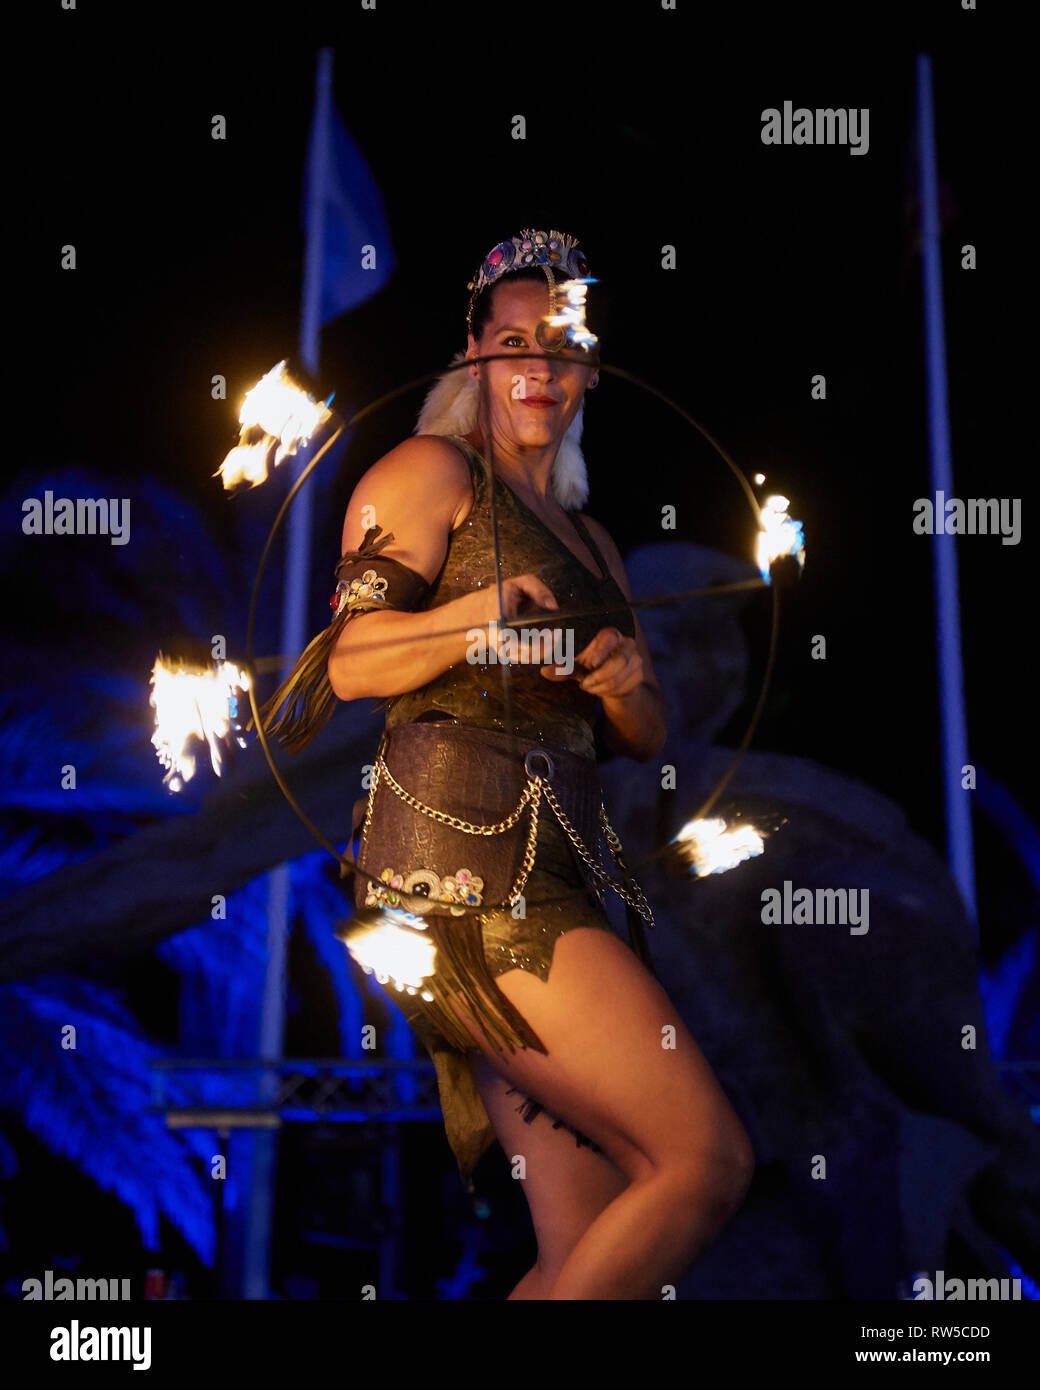 Full Moon Party - The unique Luna Llena De Manilva festival.  A beautiful sight, with attendees dressed in white and fire juggling entertainers. - Stock Image